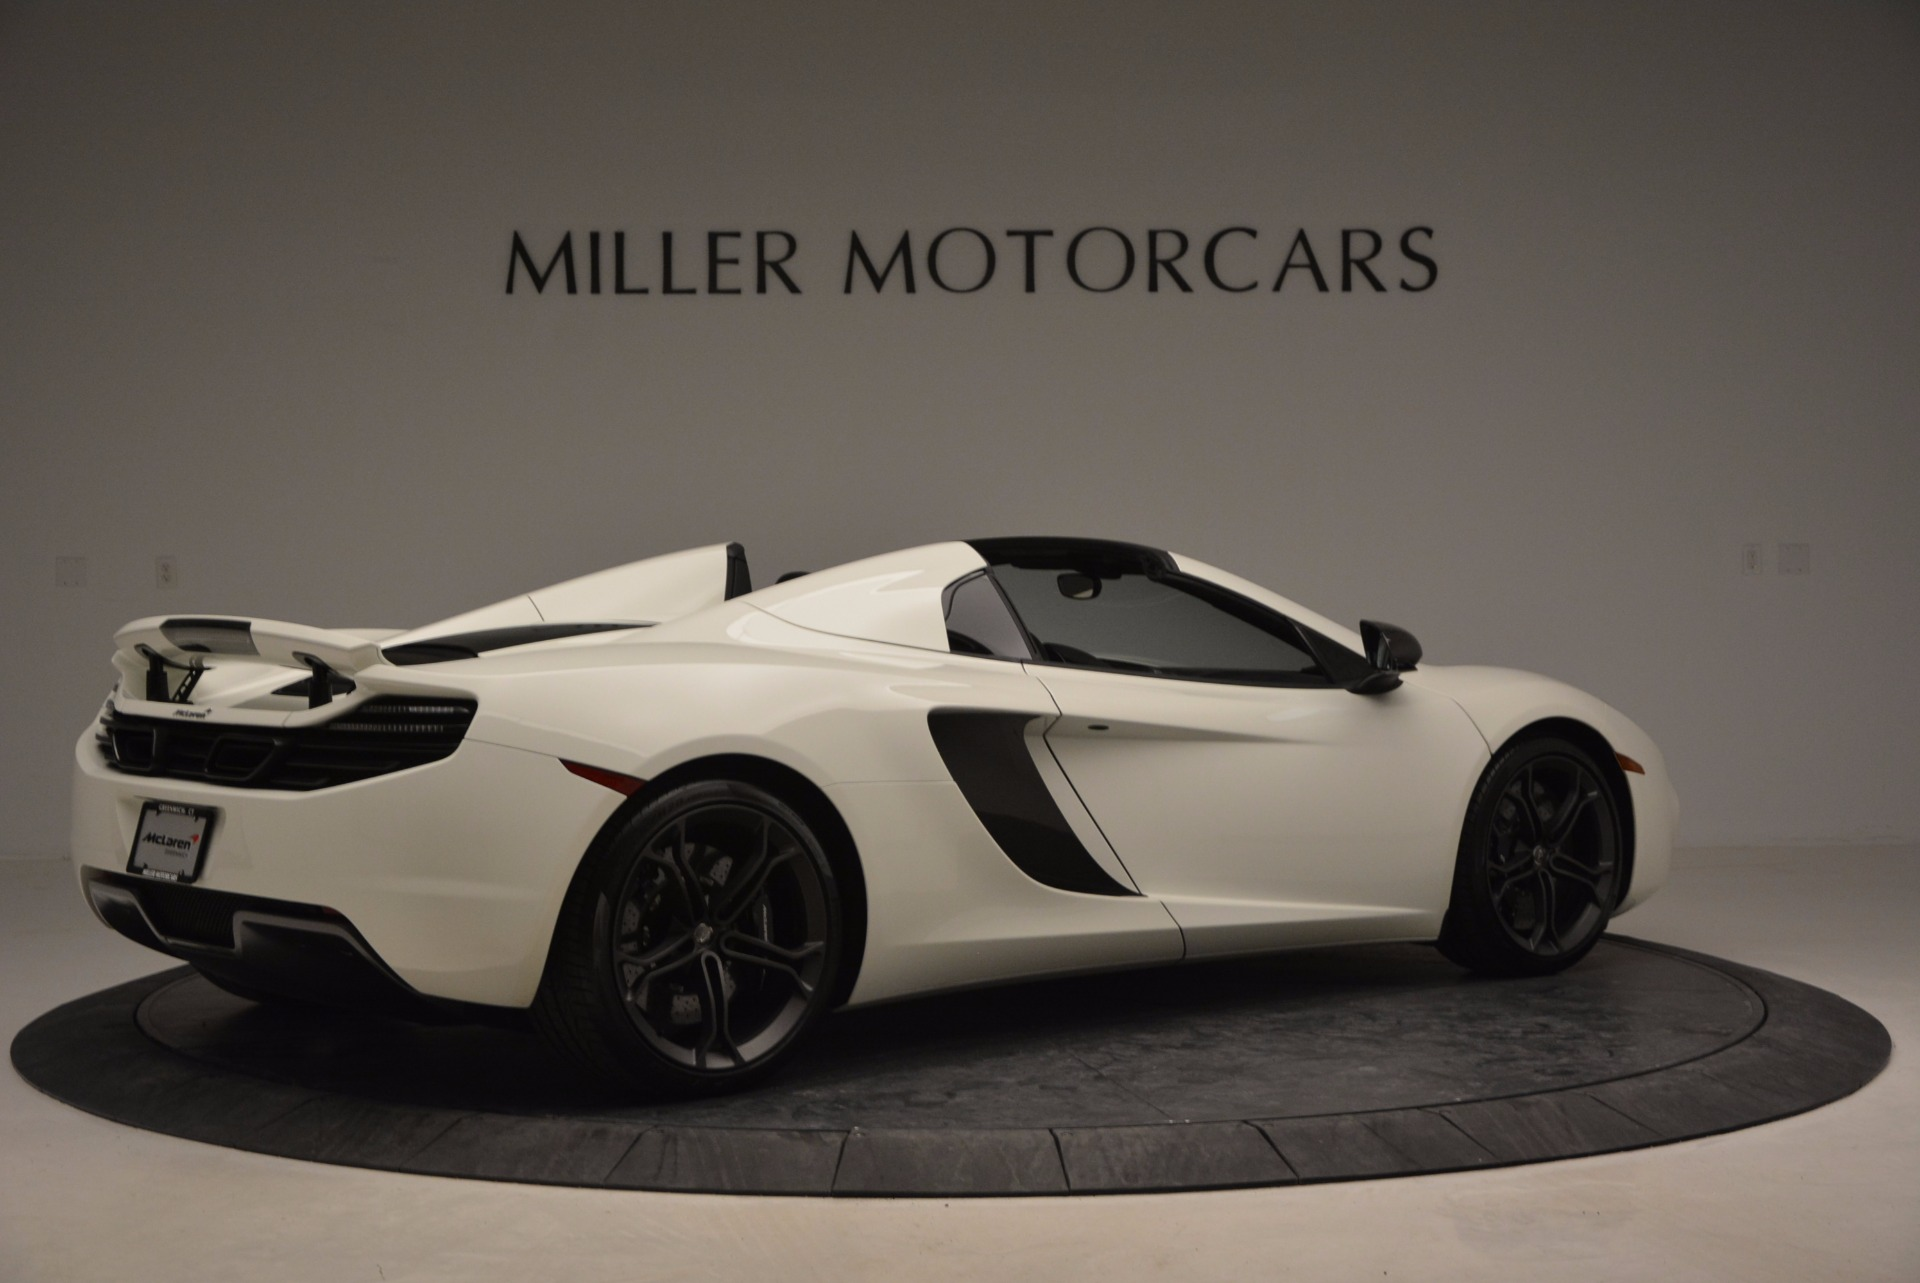 Used 2014 McLaren MP4-12C Spider For Sale In Greenwich, CT. Alfa Romeo of Greenwich, 3136 908_p8